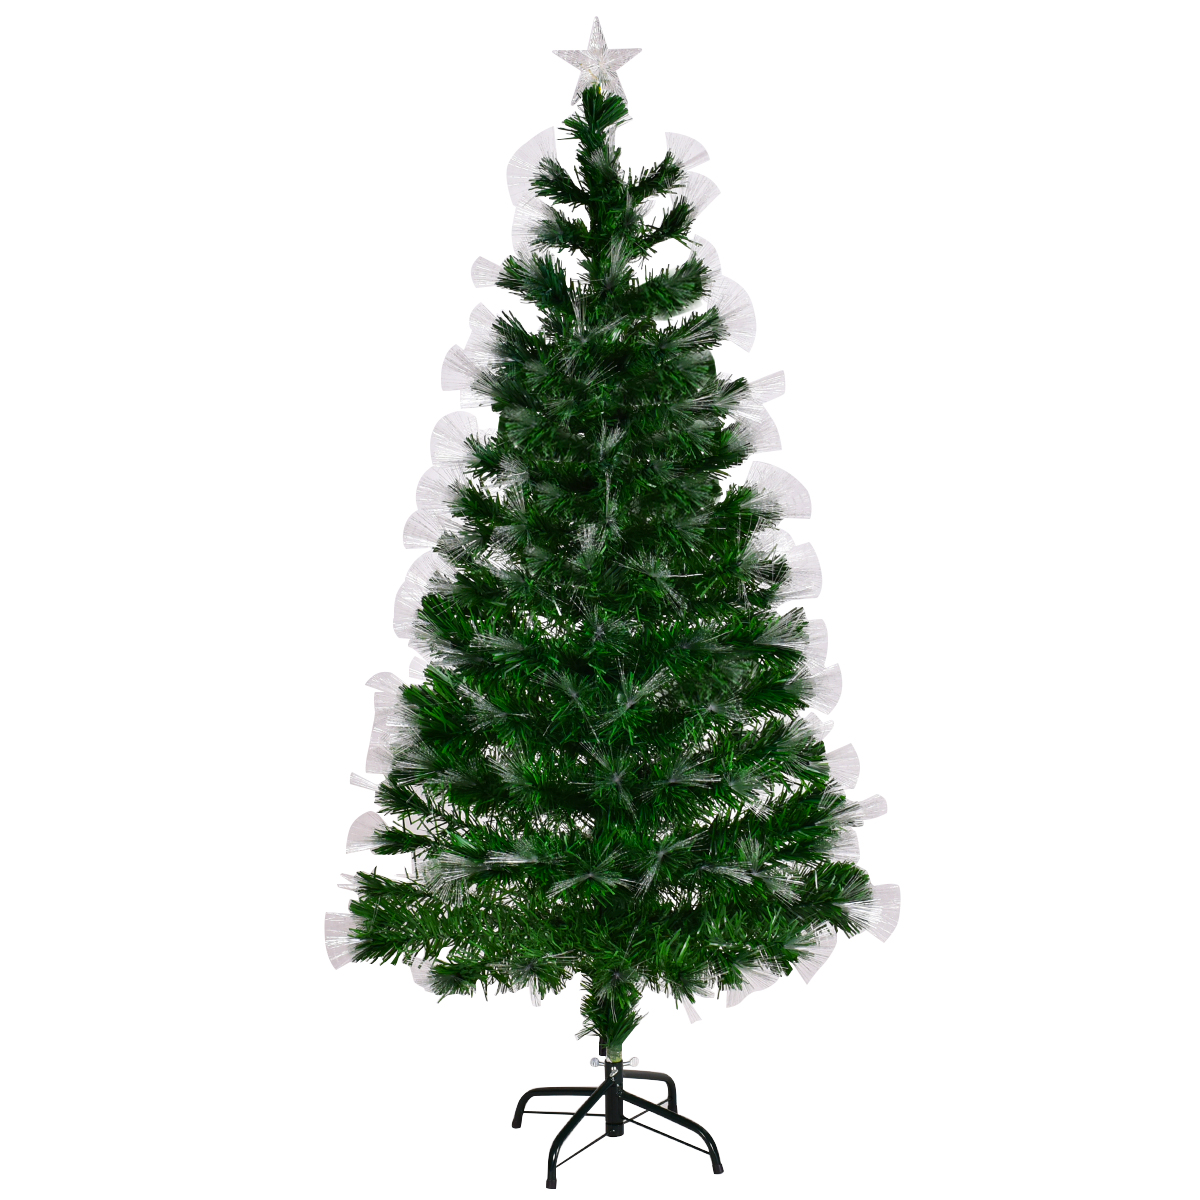 90241ec67193 5ft Fiber Optic Artificial Christmas Tree LED Blossom Effects W/ Top Star -  Seasonal & Holiday Decorations - Decor - Home & Garden